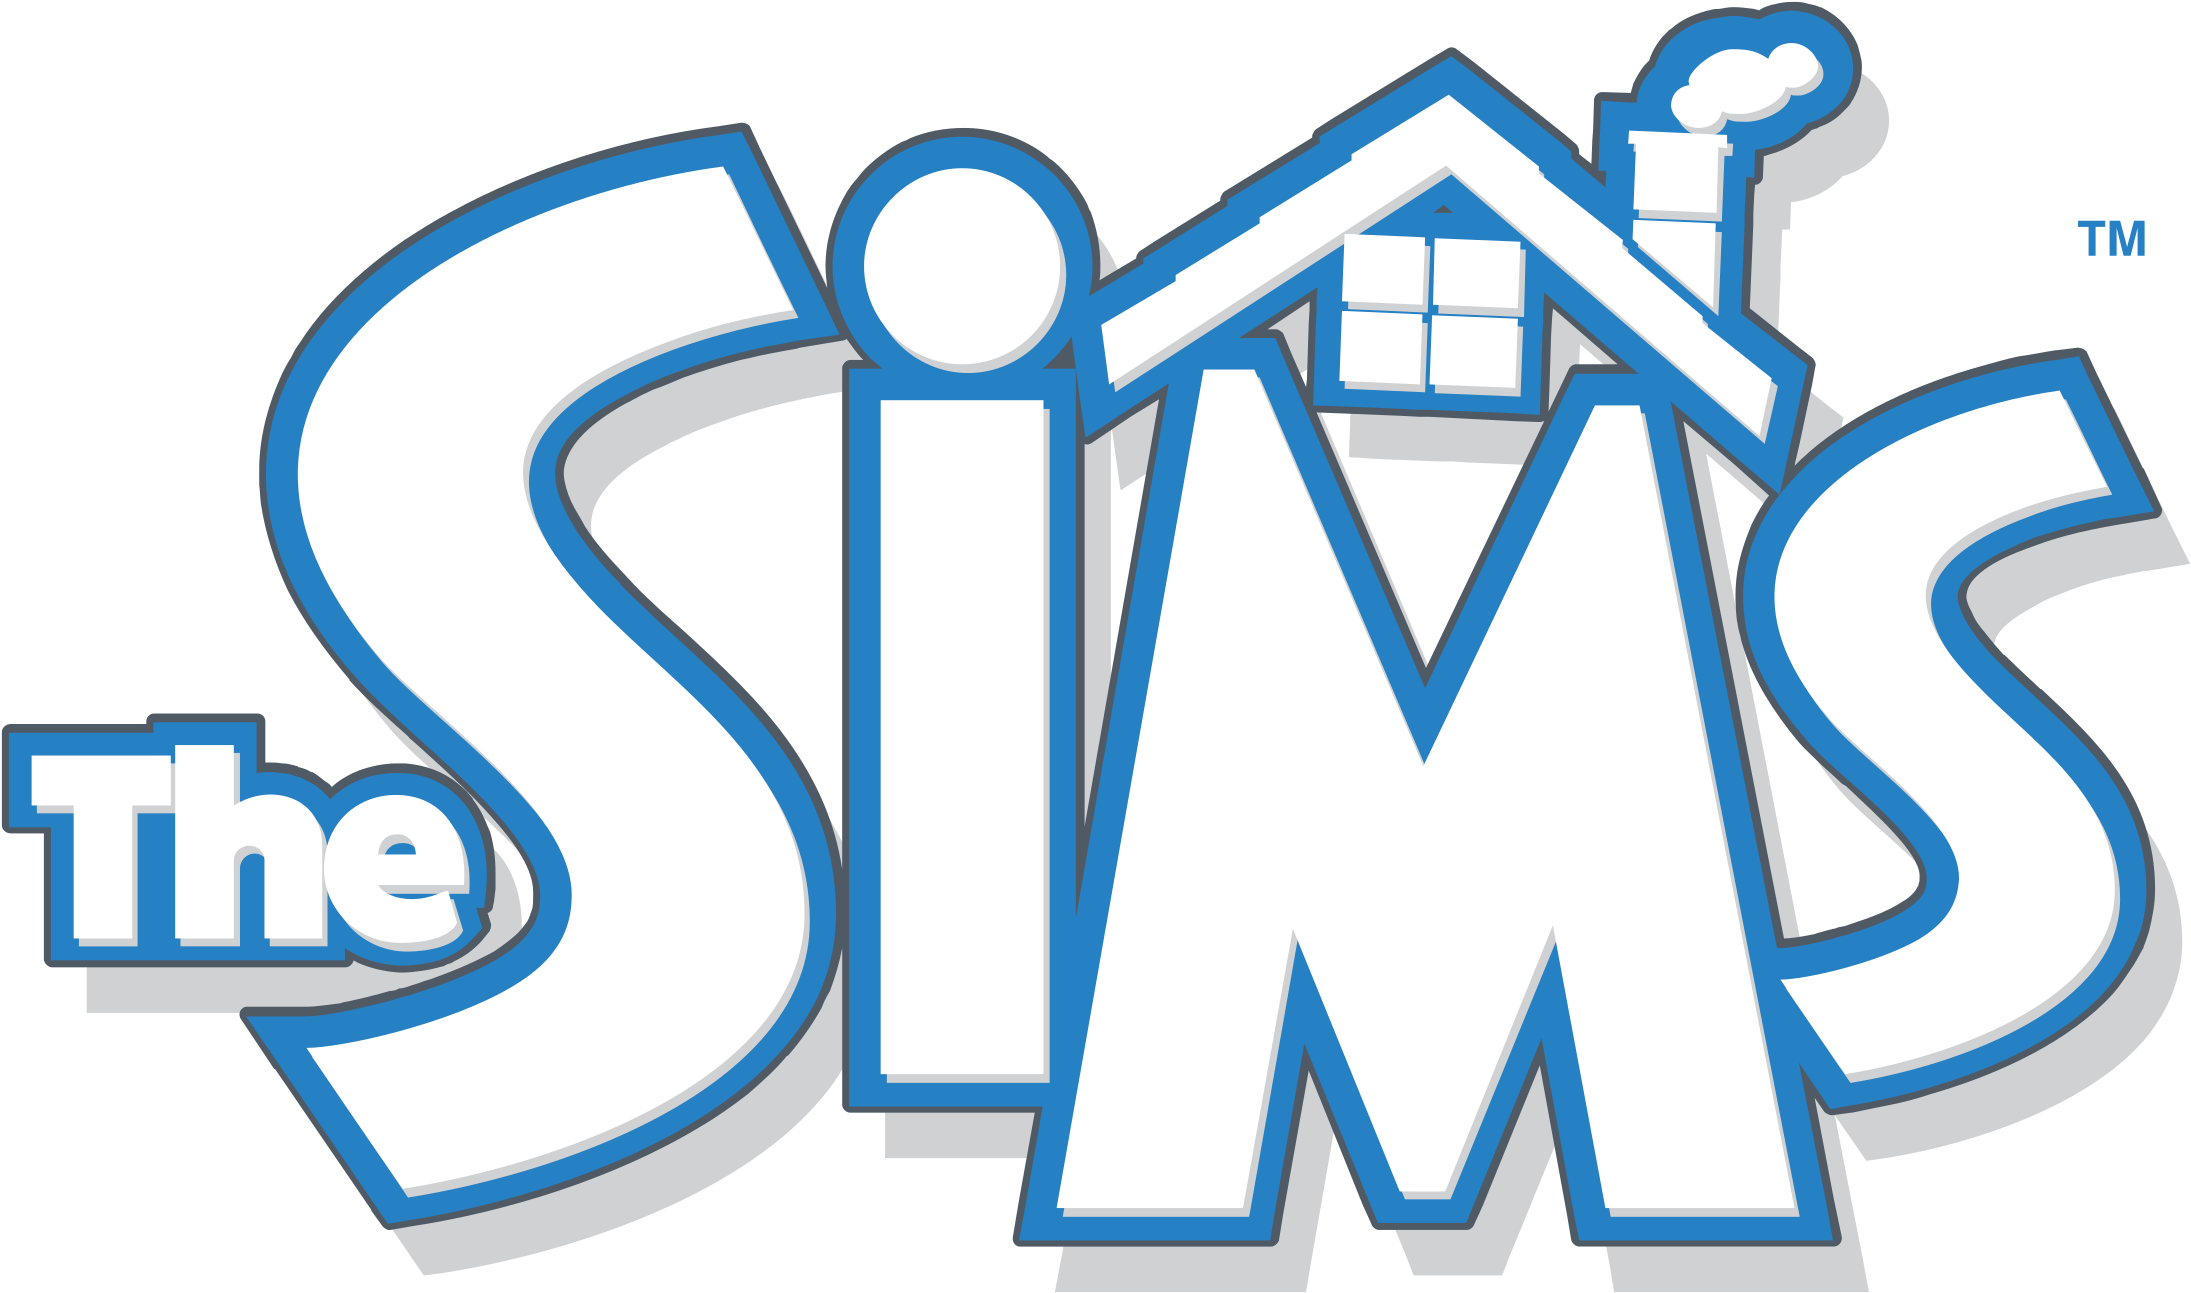 The Sims Series Logopedia The Logo And Branding Site